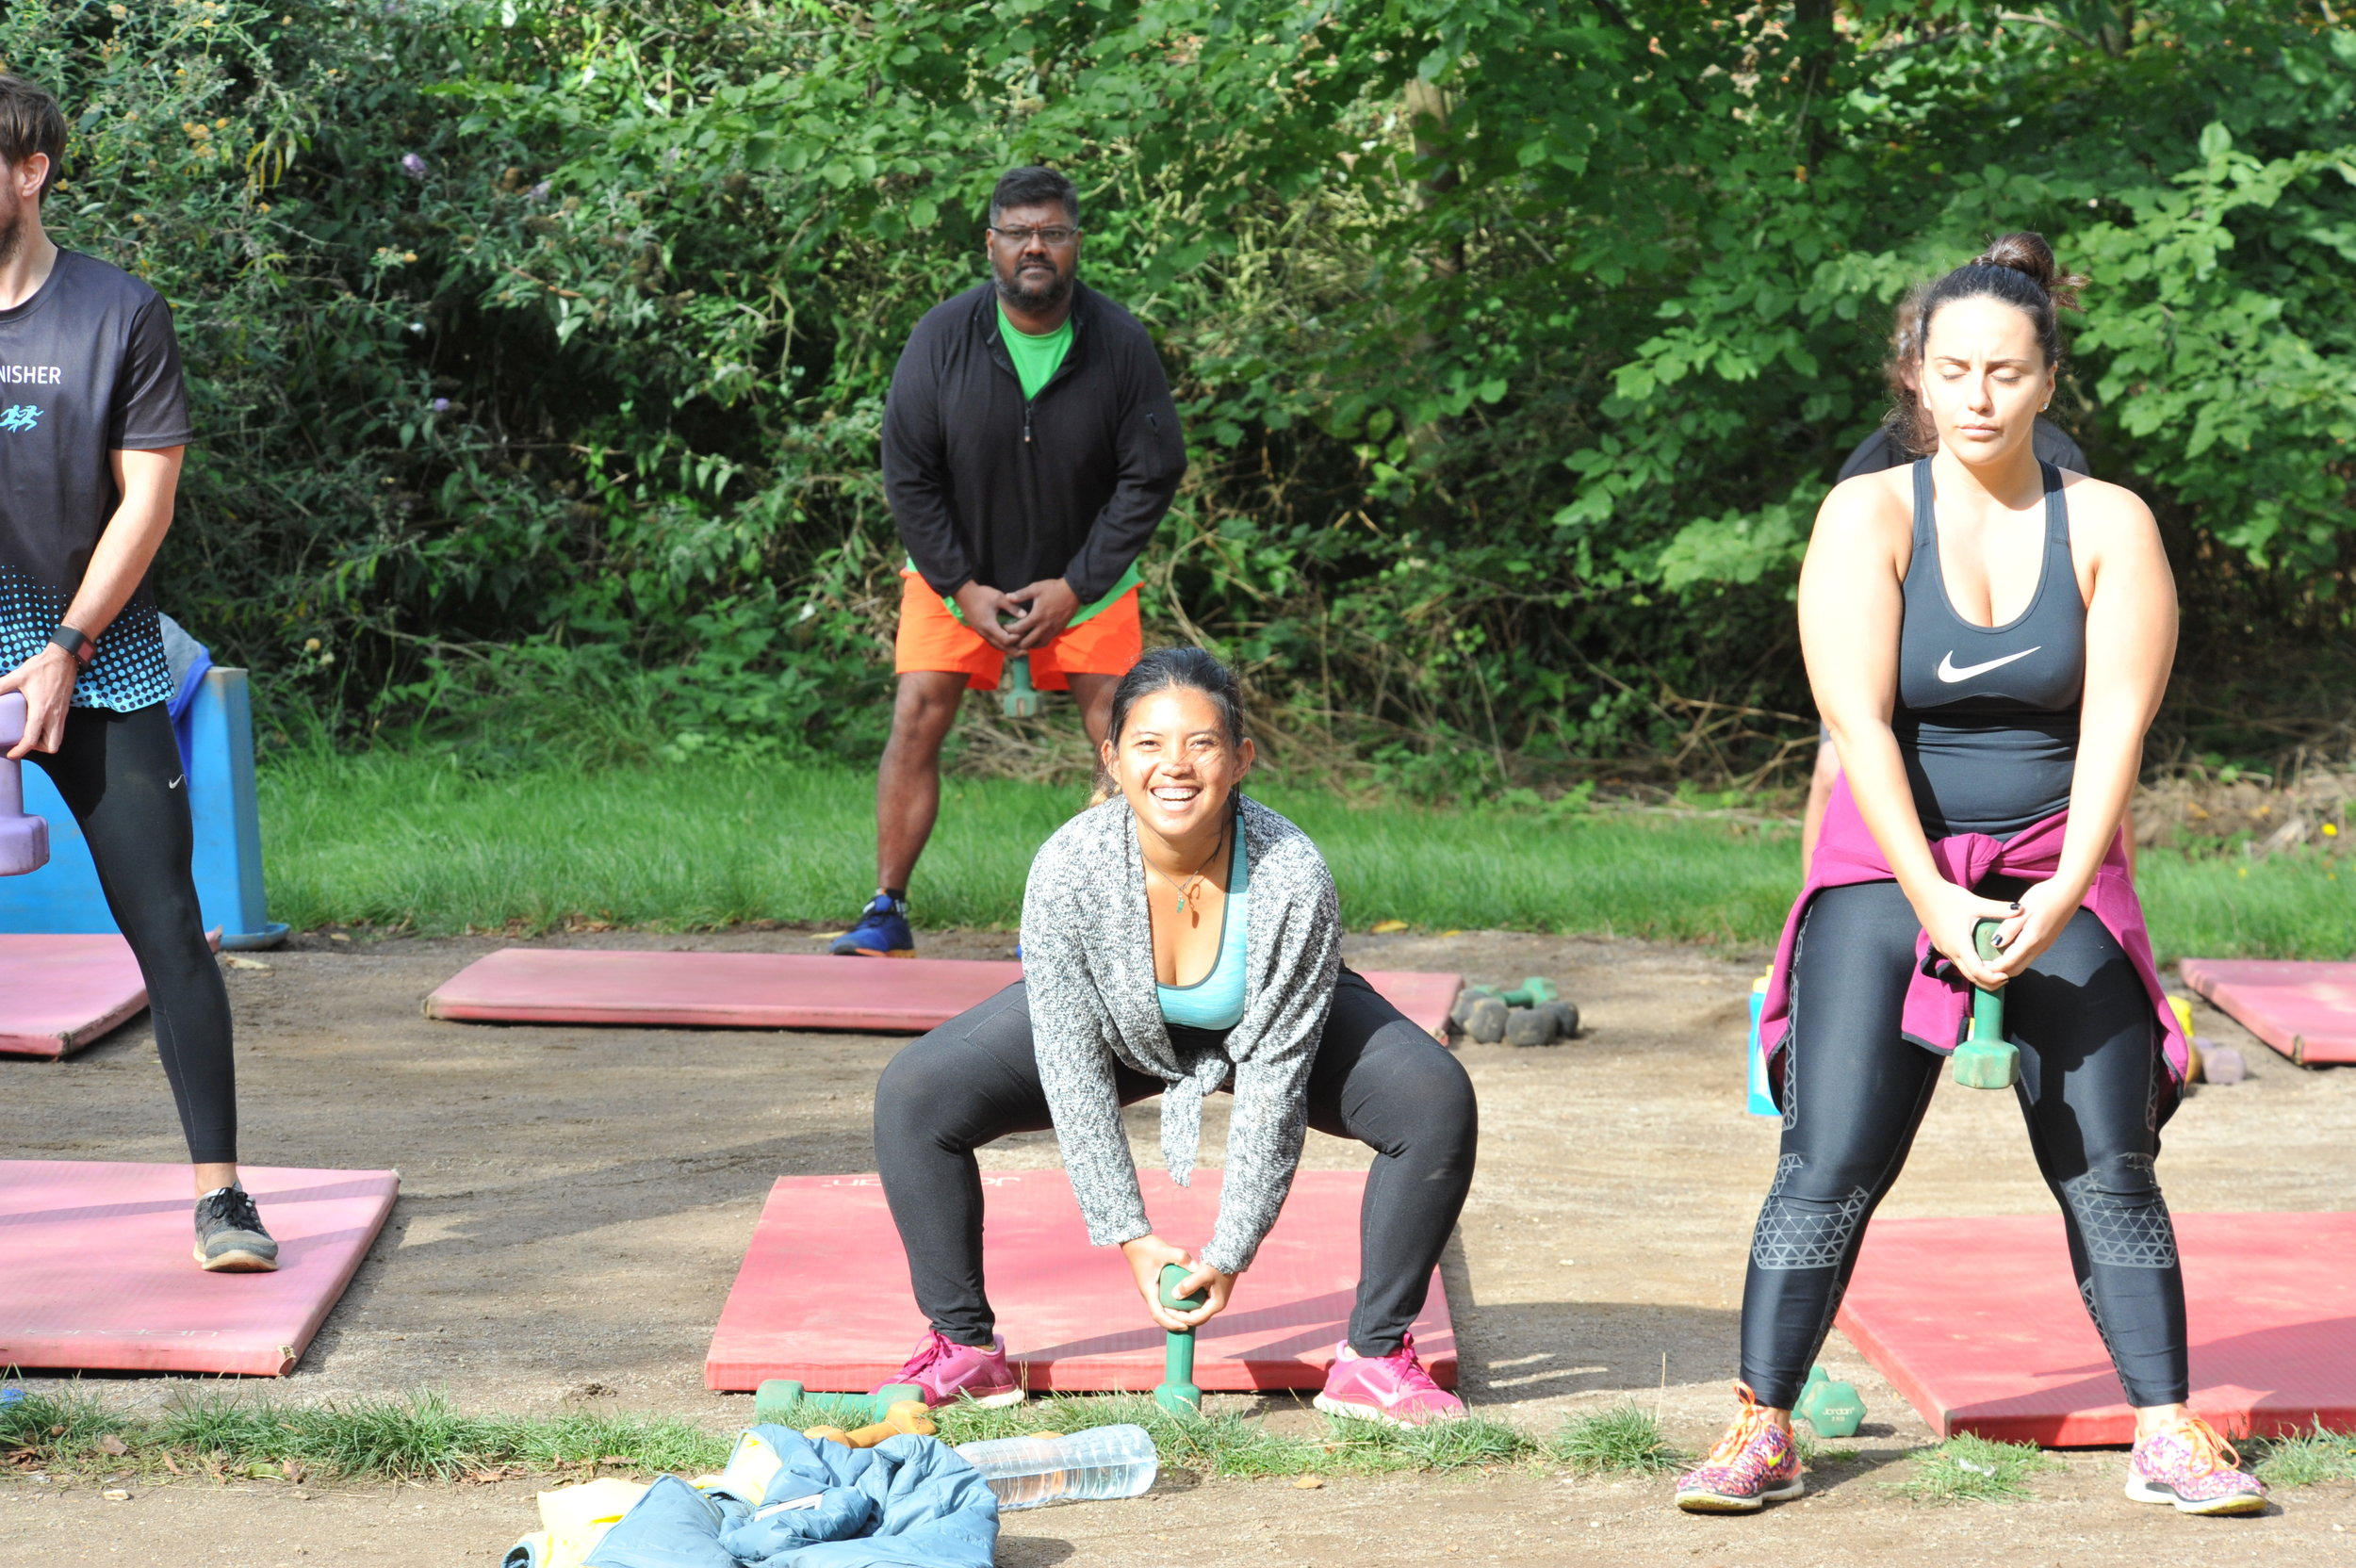 One of the workouts at the No1 bootcamp in Norfolk!